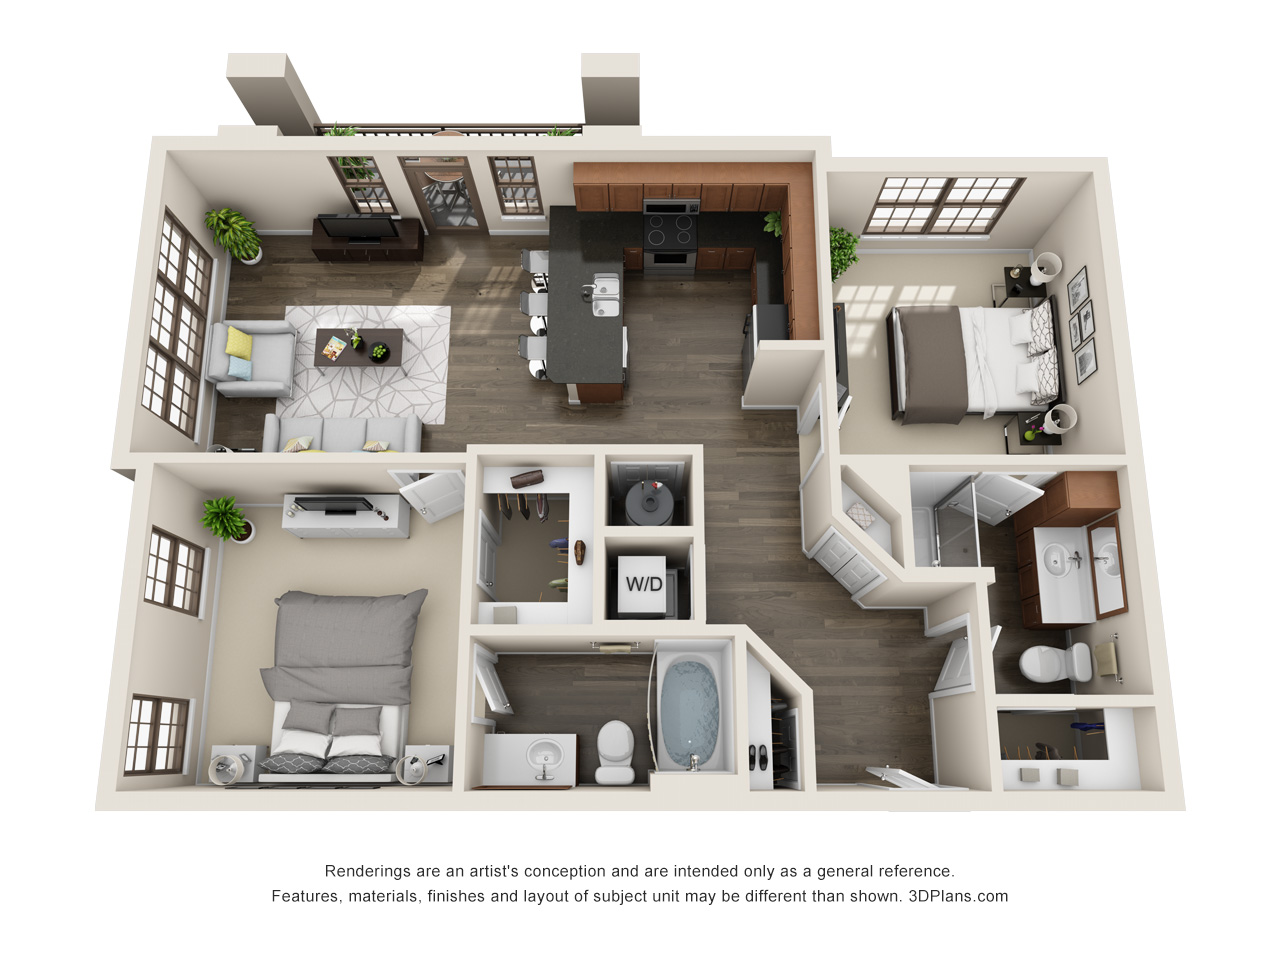 The Lexington Dillworth 2 bedroom/2 bath THE ELIOT 2 floorplan